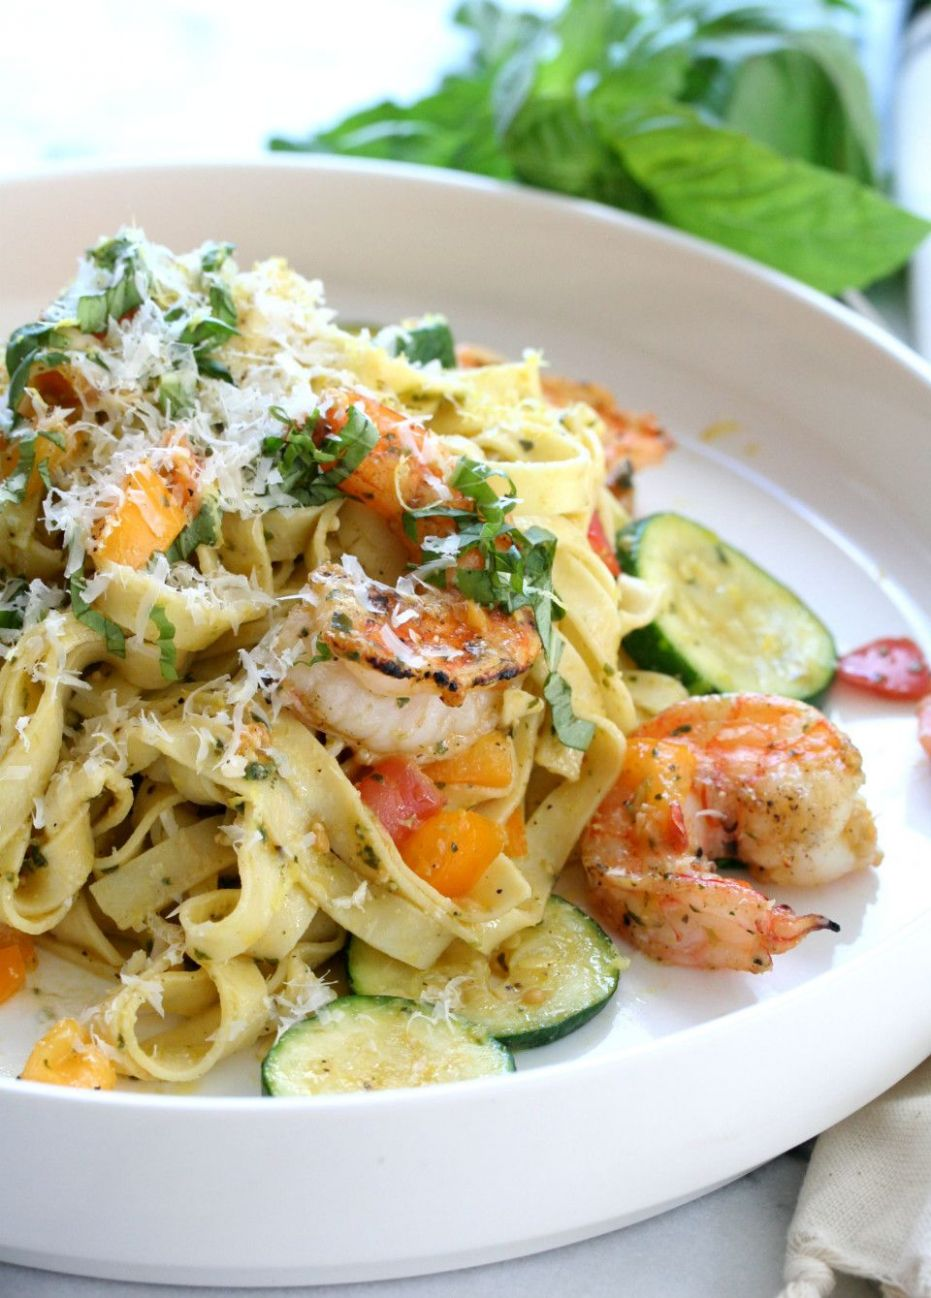 Summer Pasta Primavera - Summer Recipes Pasta